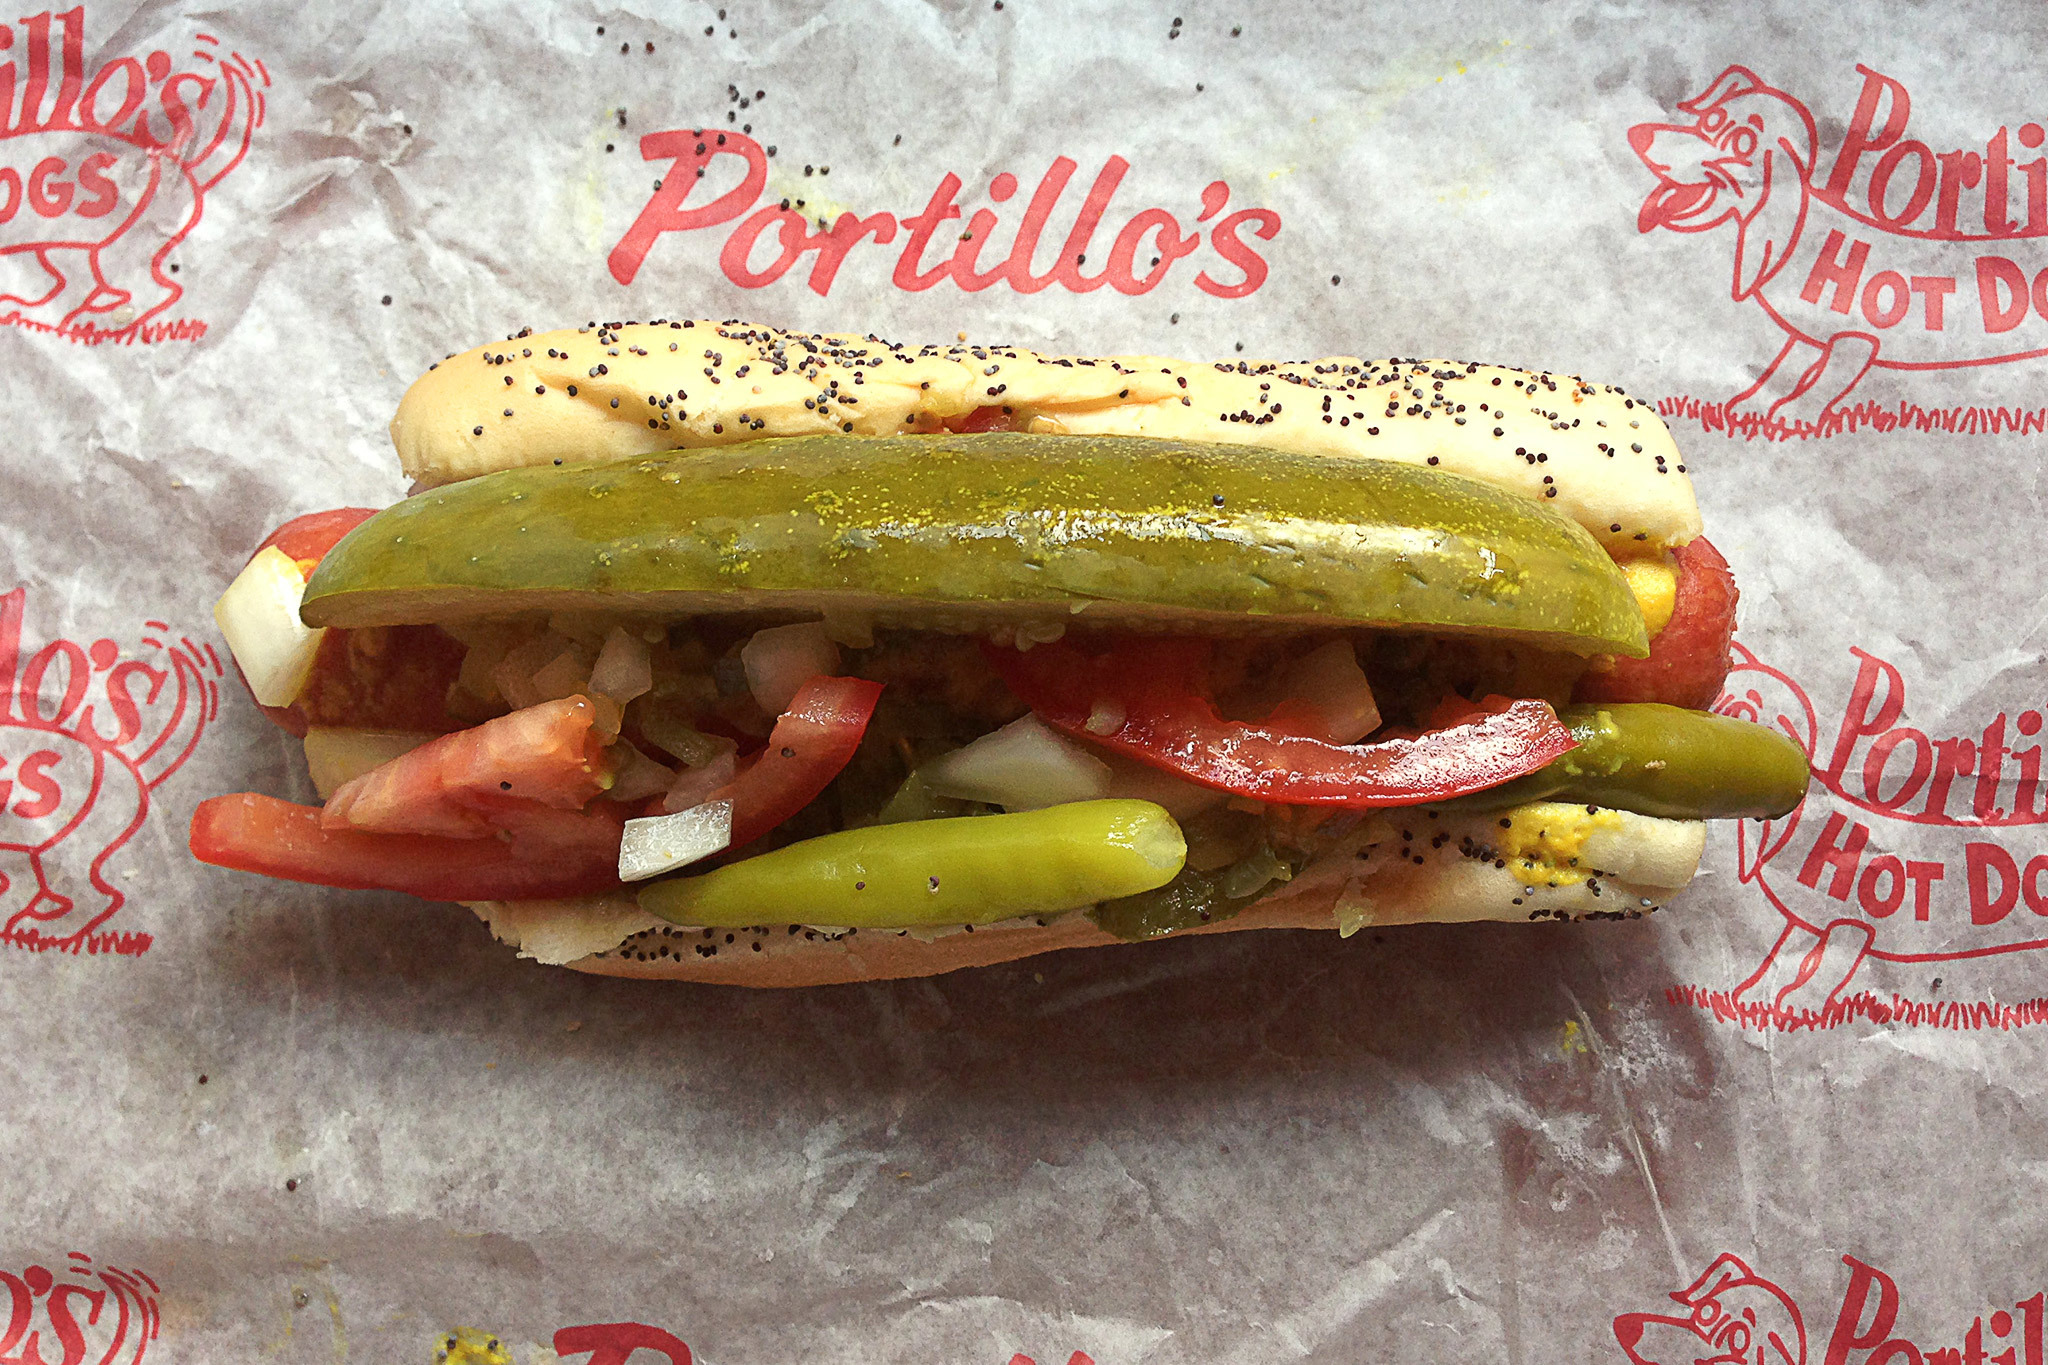 Chicago is getting a second Portillo's restaurant